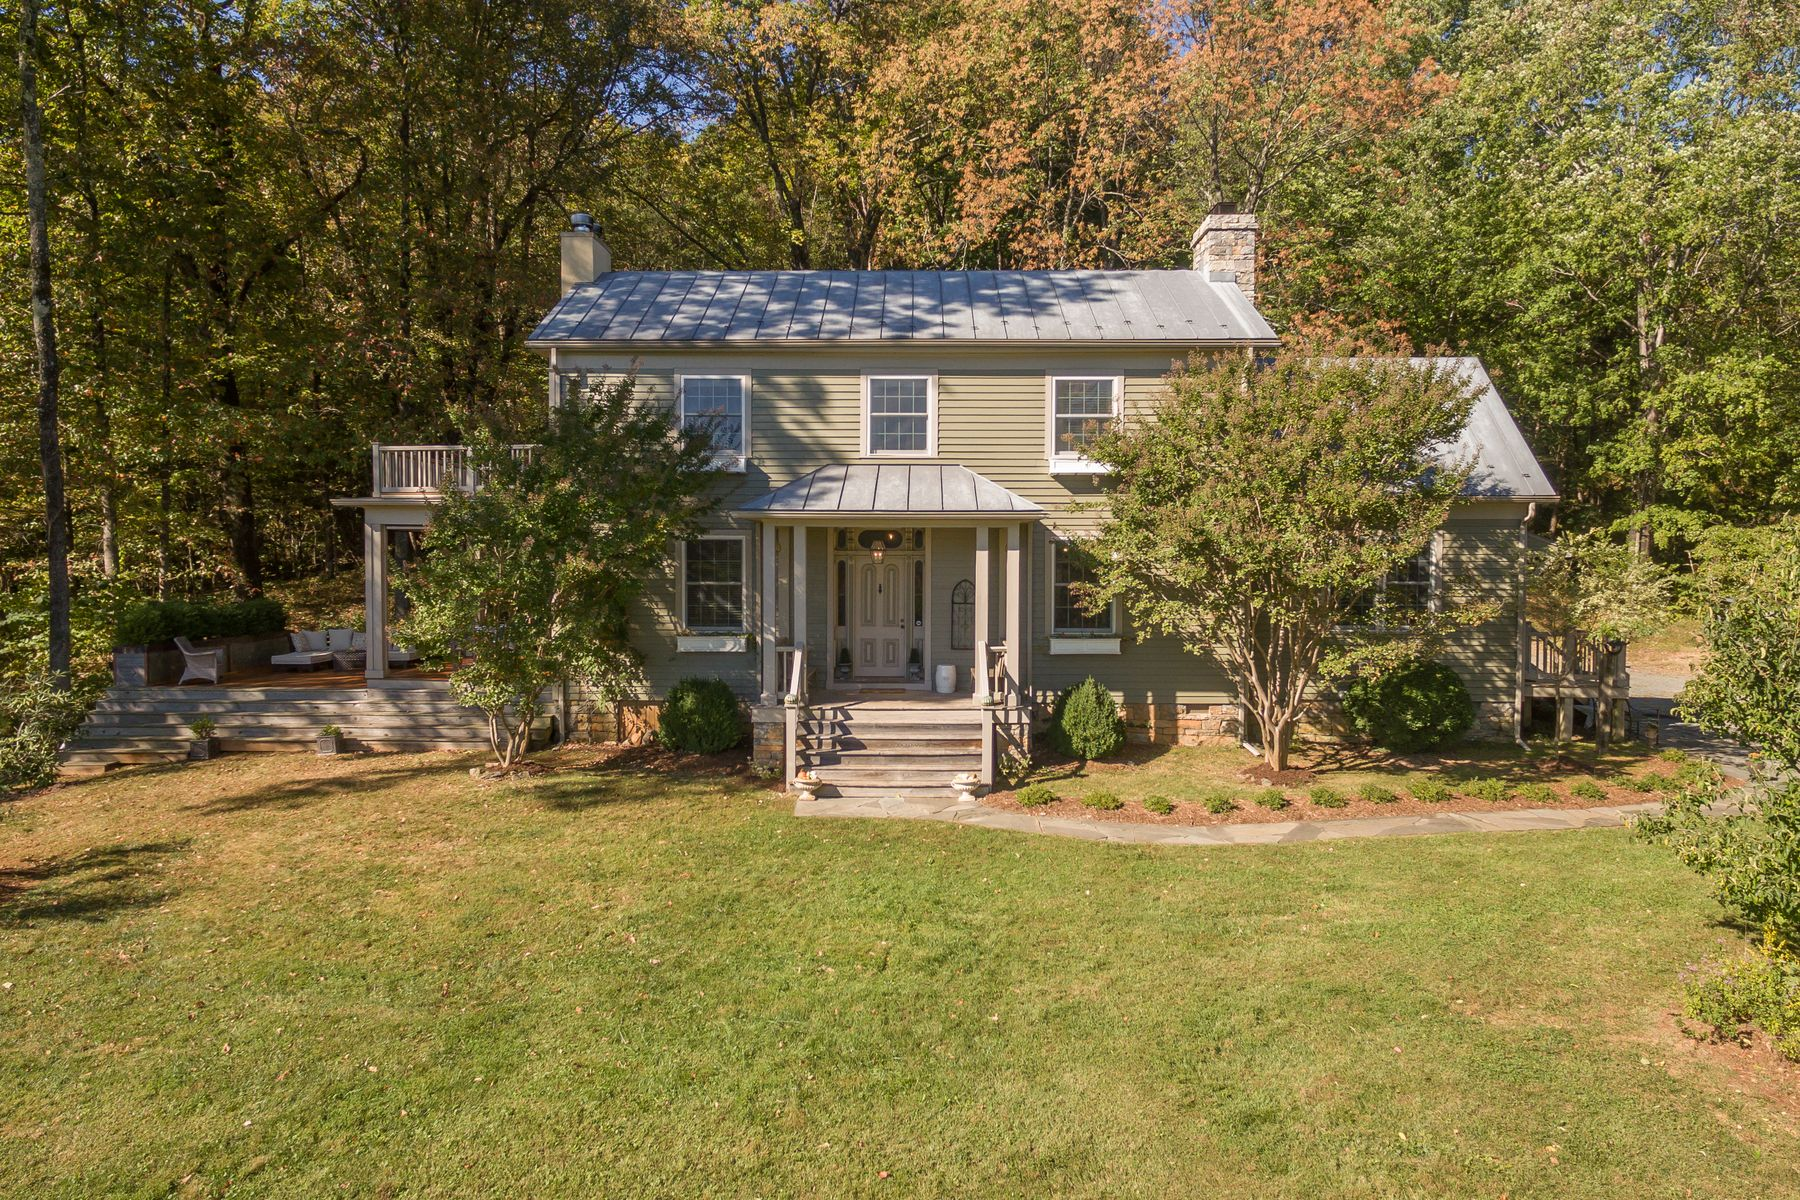 Single Family Home for Sale at 3300 Middle Mountain Rd Crozet, Virginia, 22932 United States